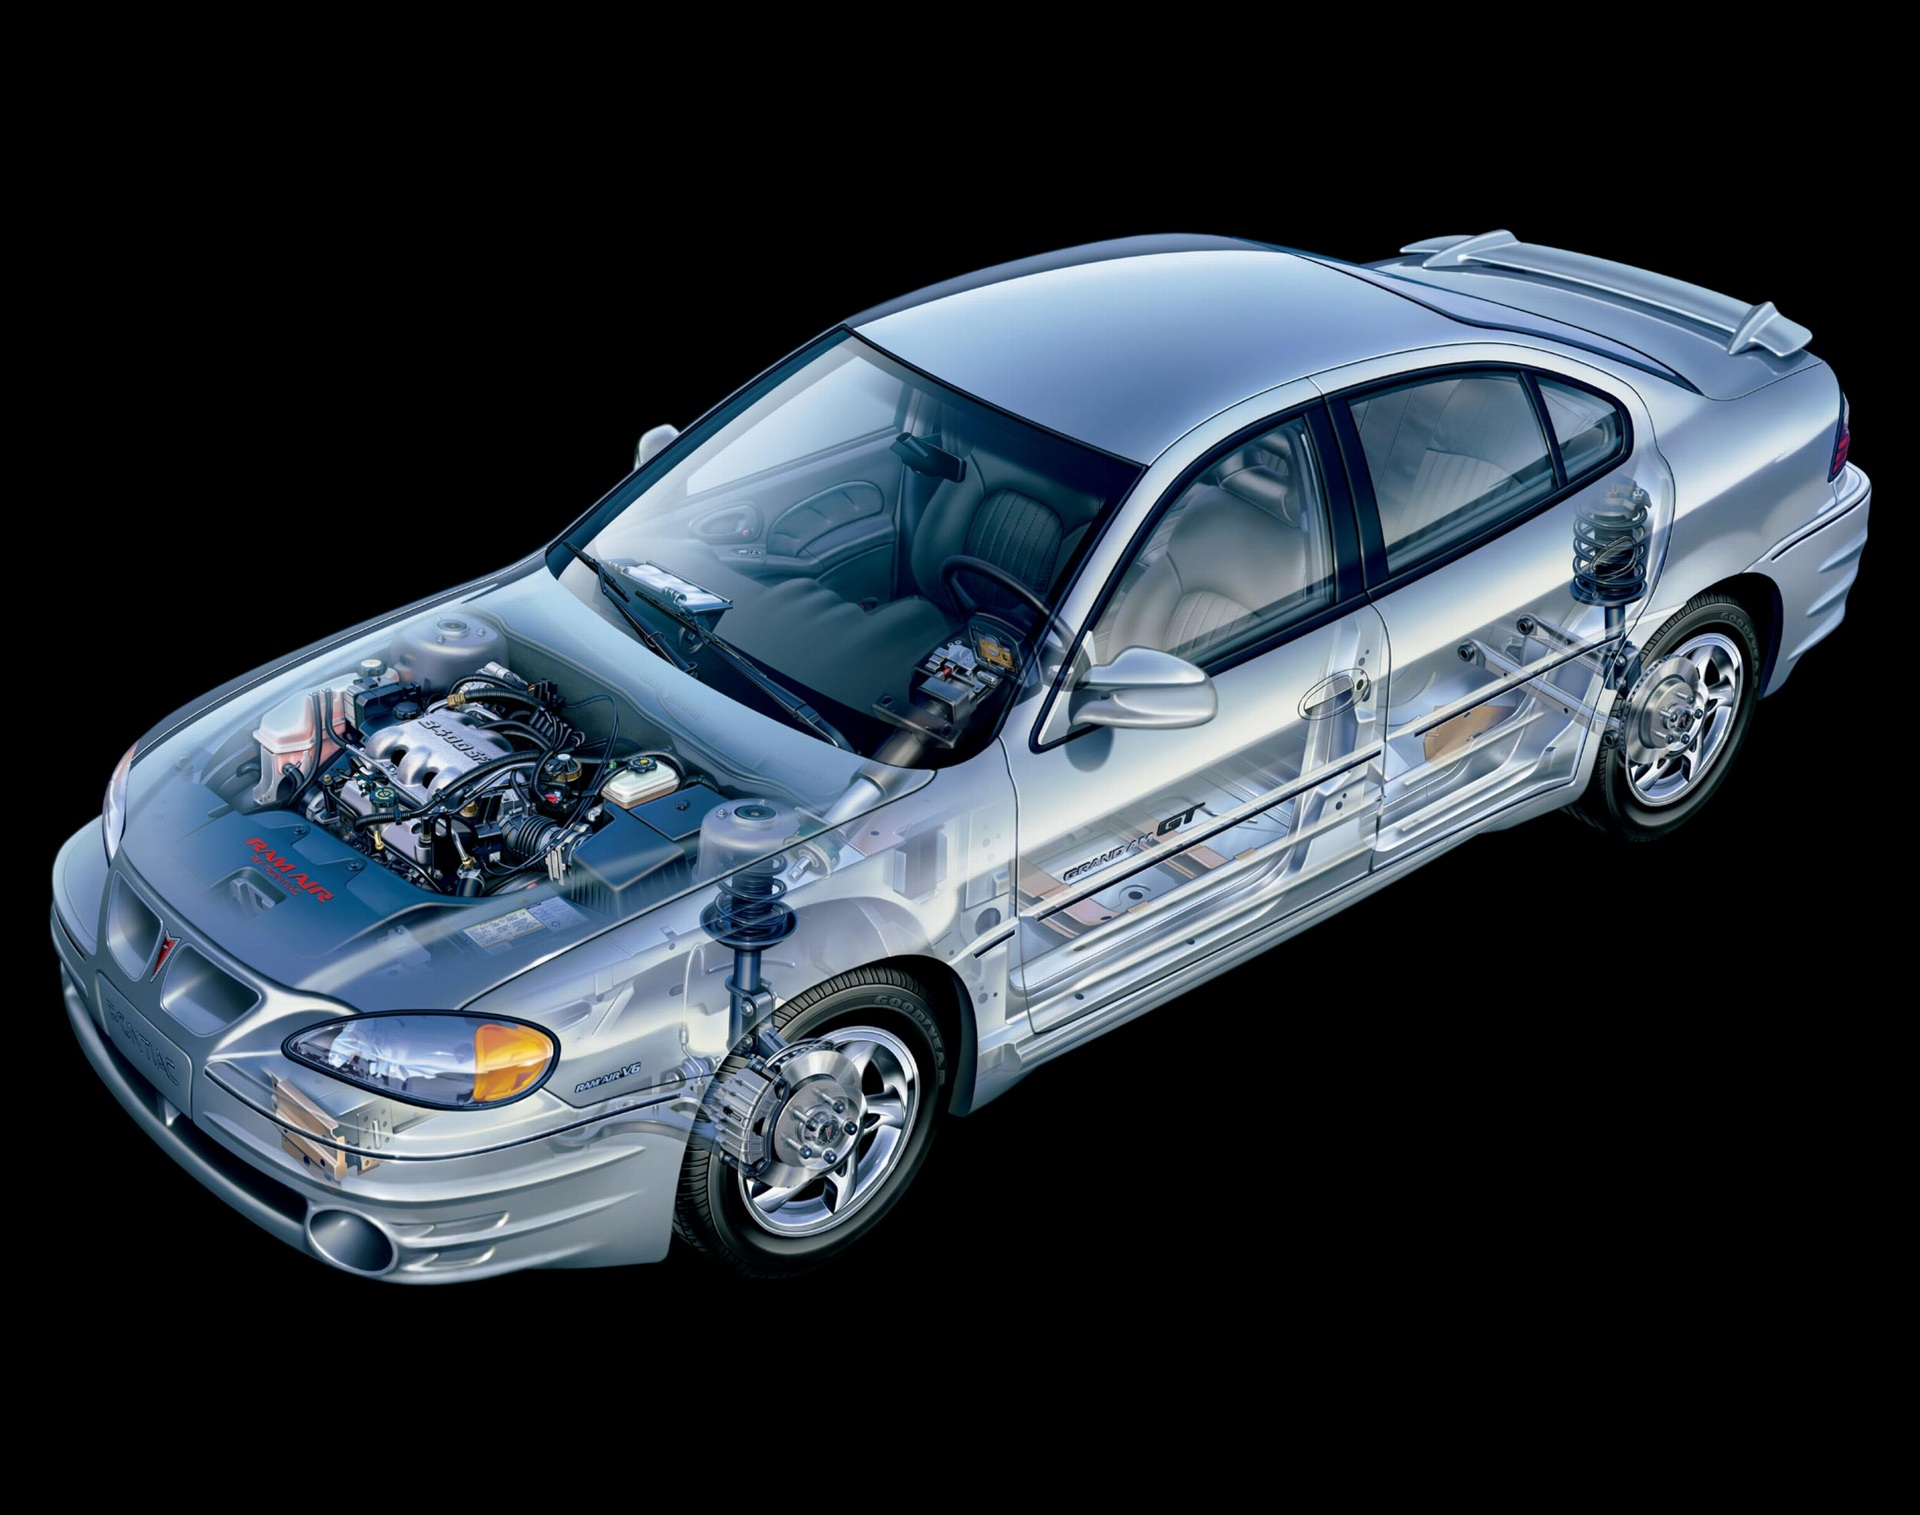 2002 pontiac grand am images photo 2002 pontiac grandam. Black Bedroom Furniture Sets. Home Design Ideas